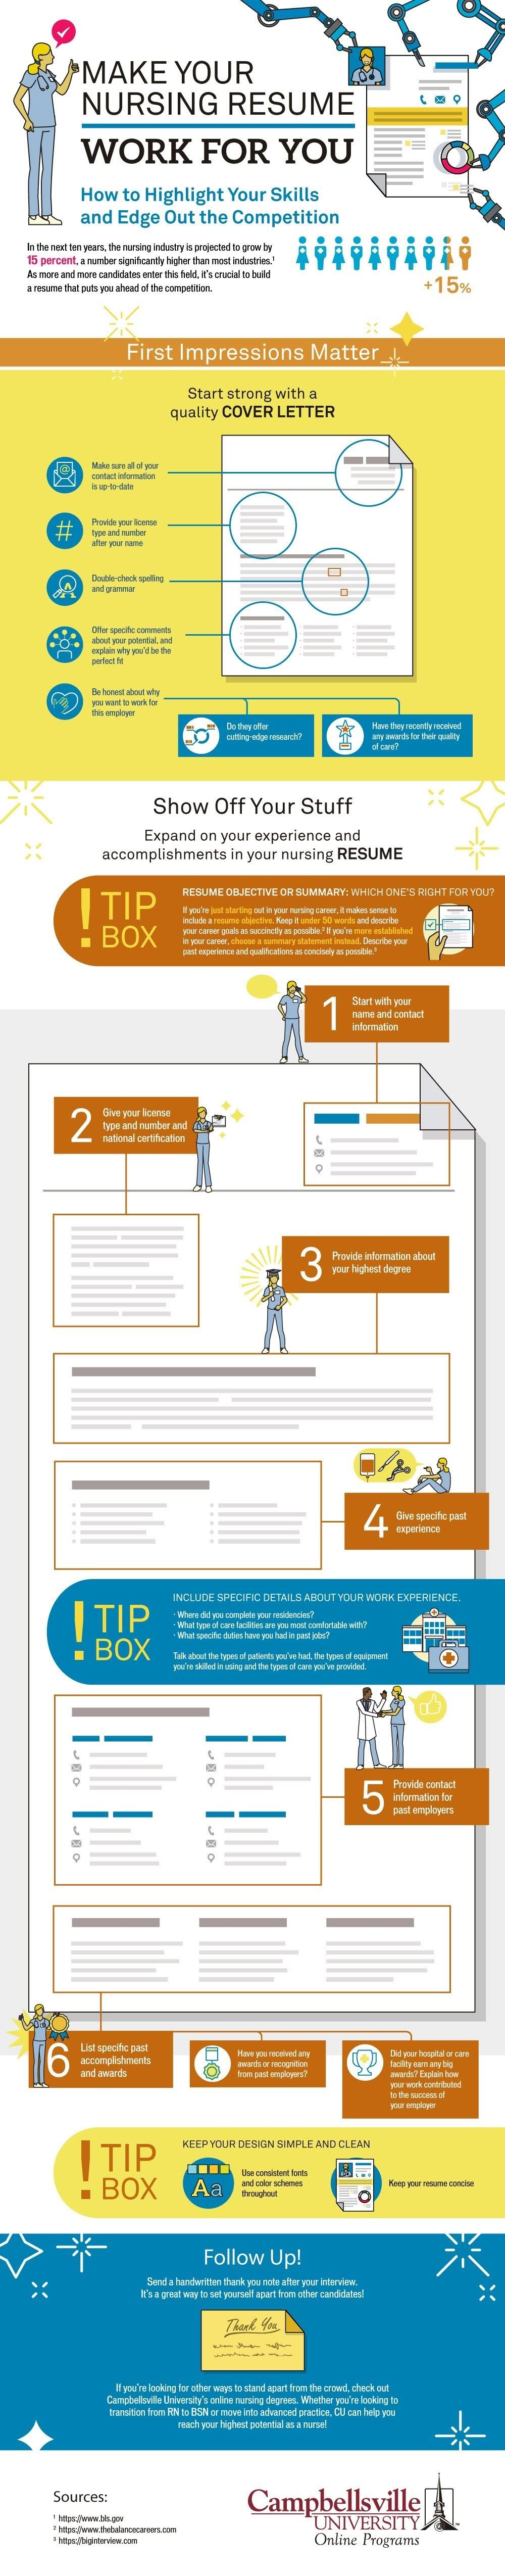 Make Your Nursing Resume Work For You #infographic